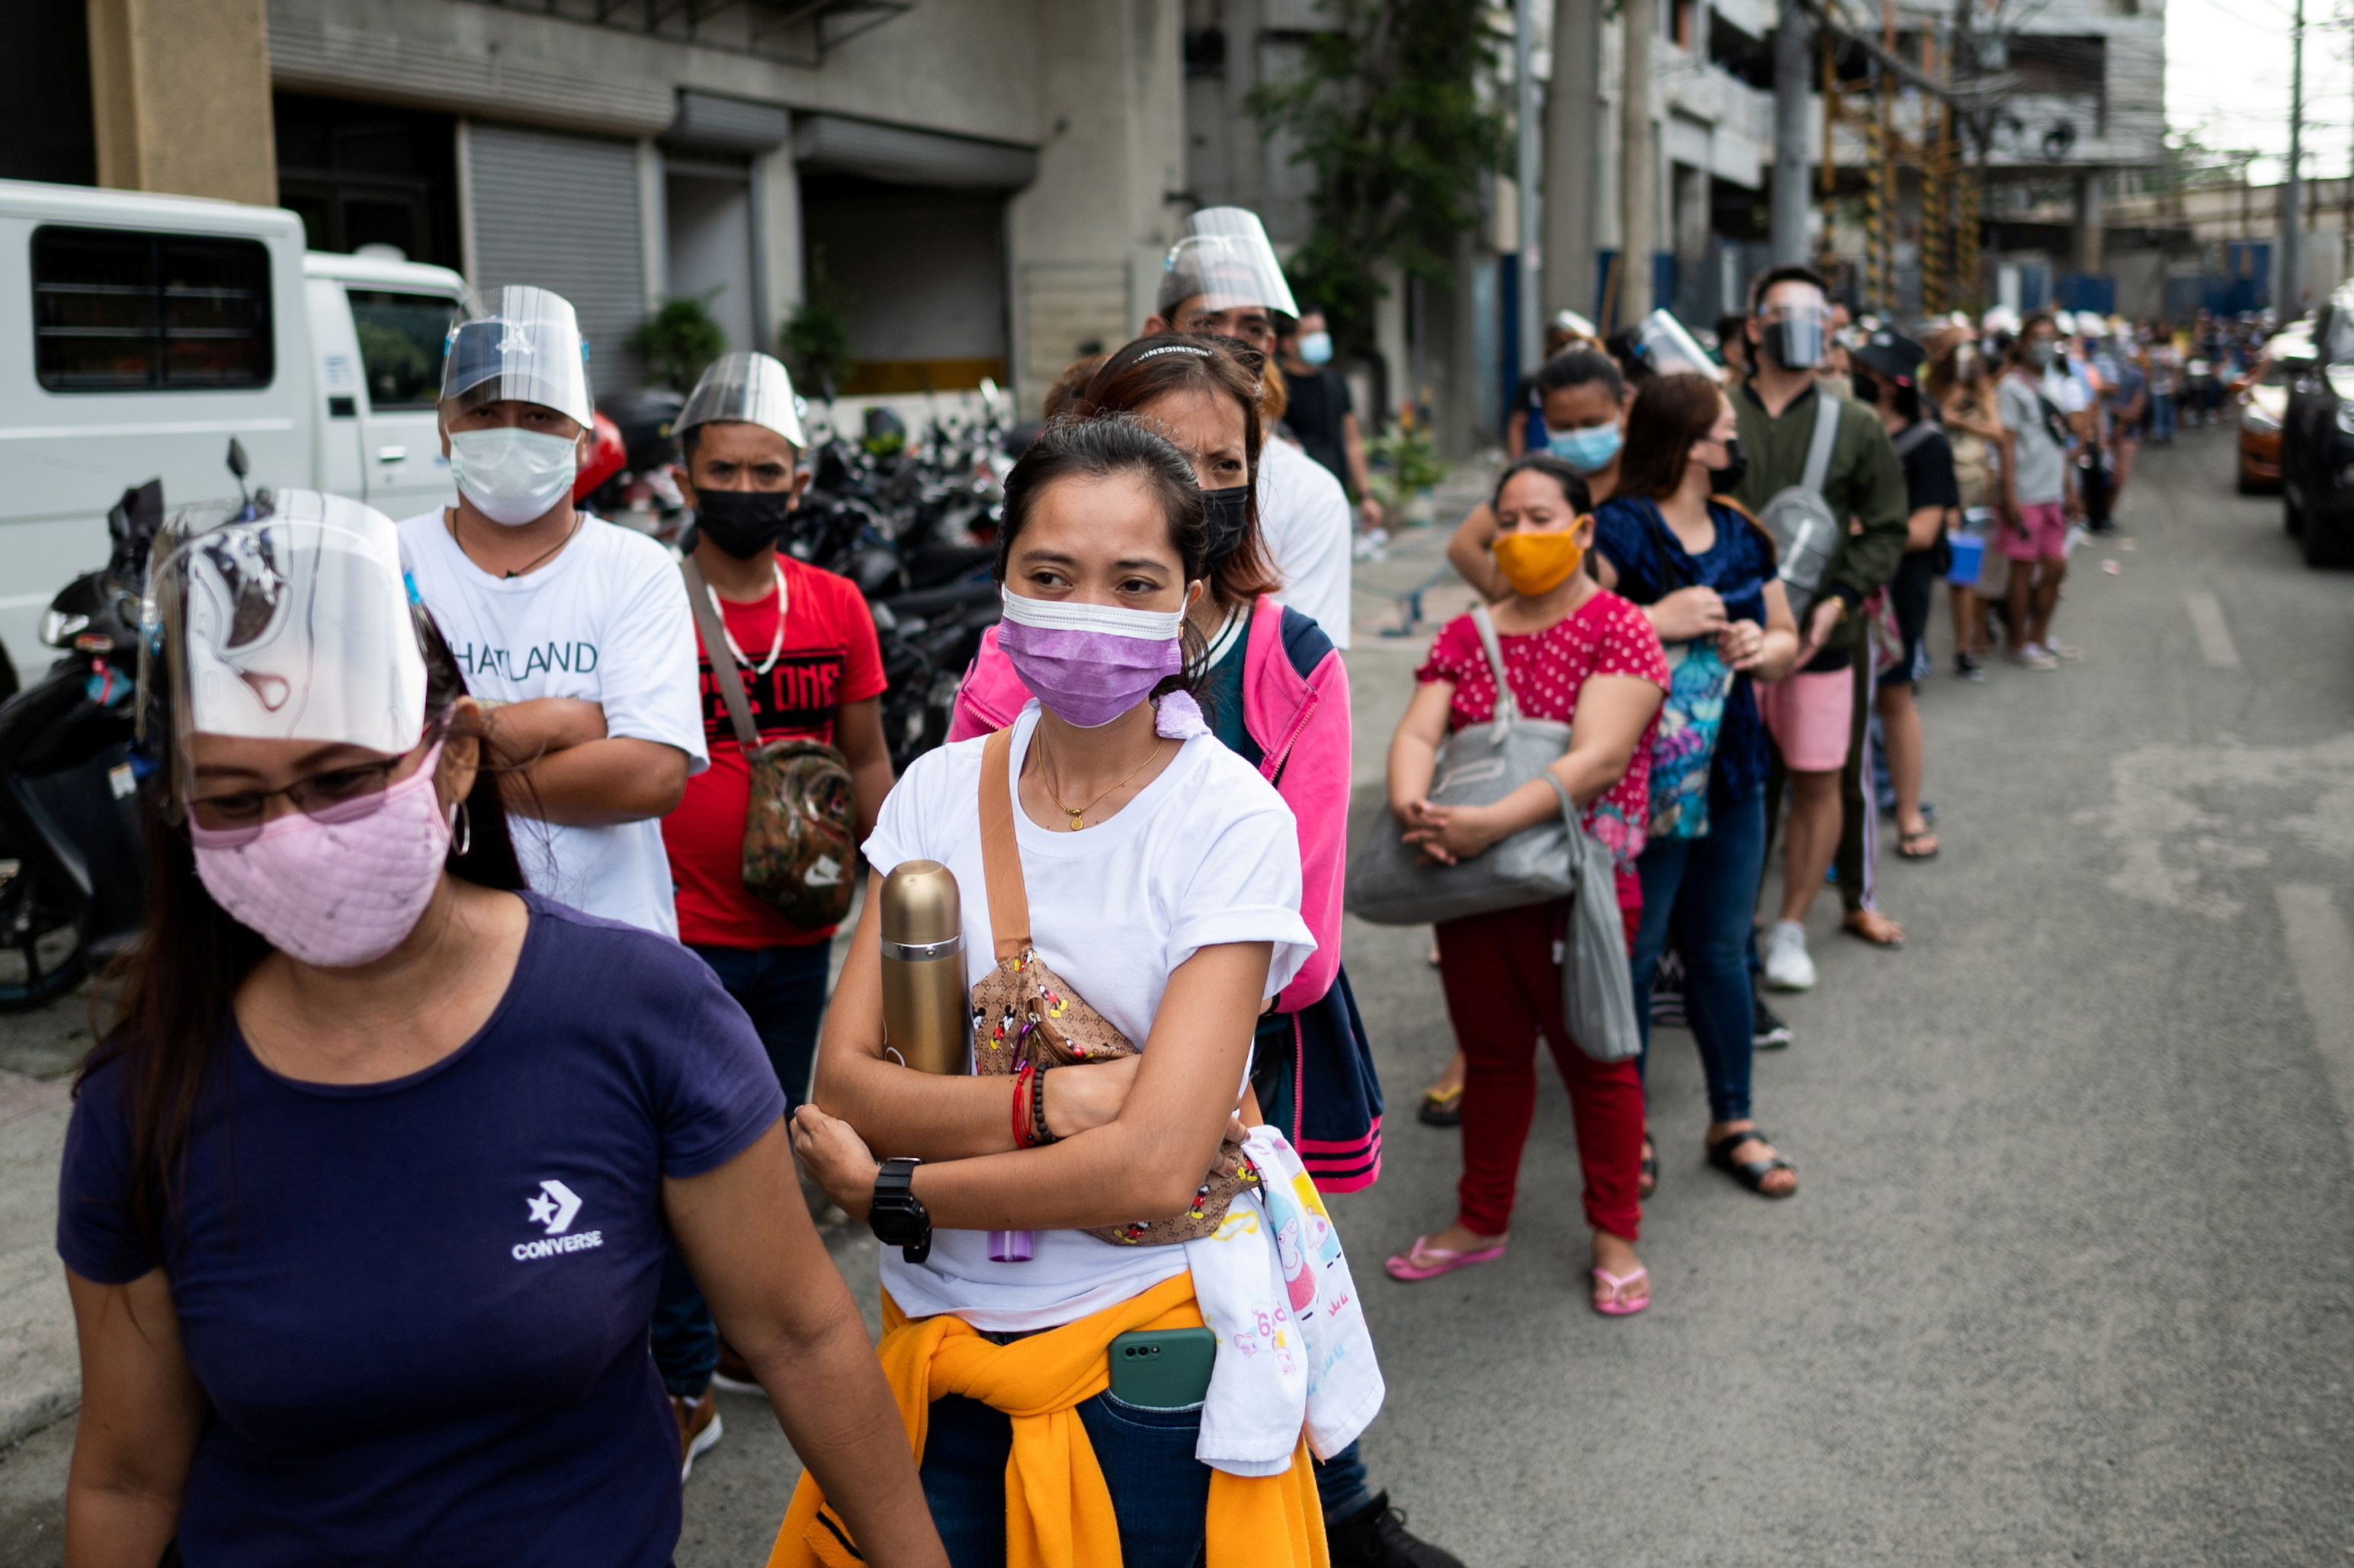 Filipinos waiting to be vaccinated against the coronavirus disease (COVID-19) queue outside a mall, a day before stricter lockdown measures are implemented, in Manila, Philippines, August 5, 2021. REUTERS/Lisa Marie David/File Photo